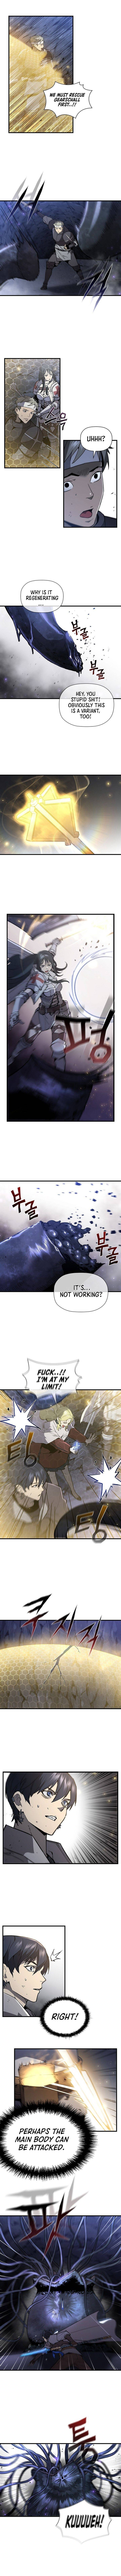 The Second Coming of Gluttony - chapter 64 - #3